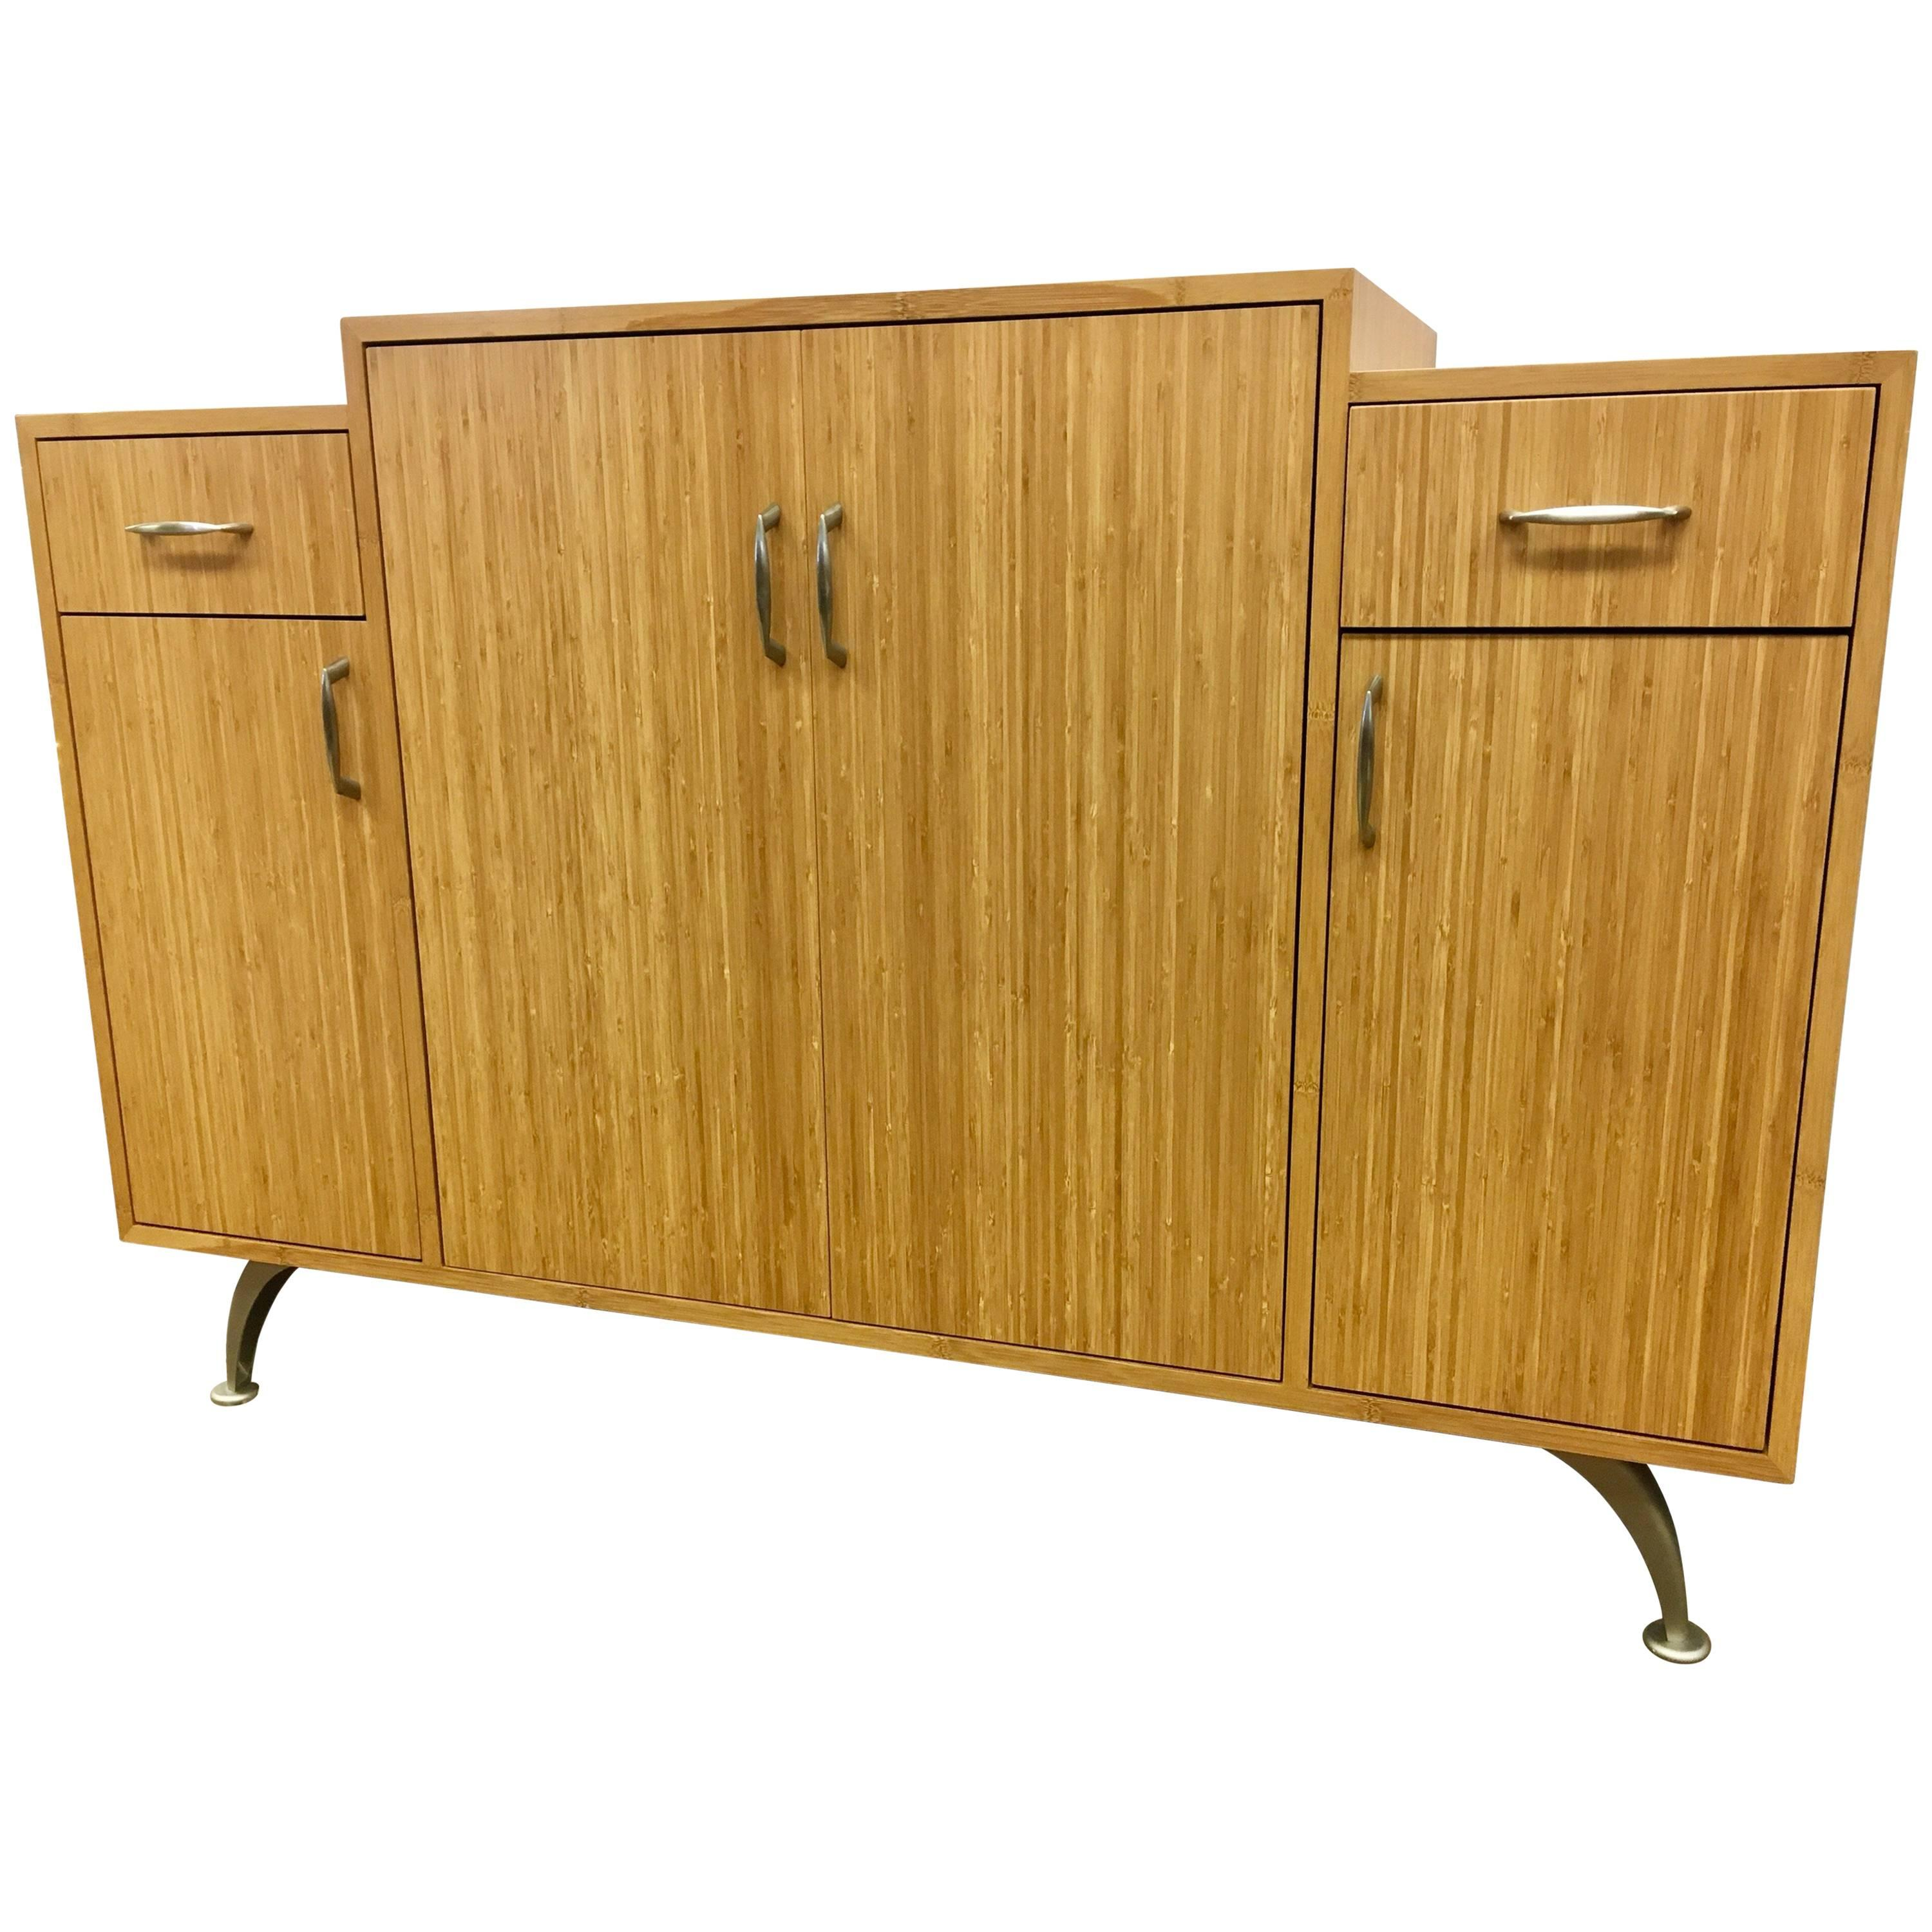 Danish Modern Bamboo Custom Server Bar Credenza Cabinet Sideboard Buffet  For Sale